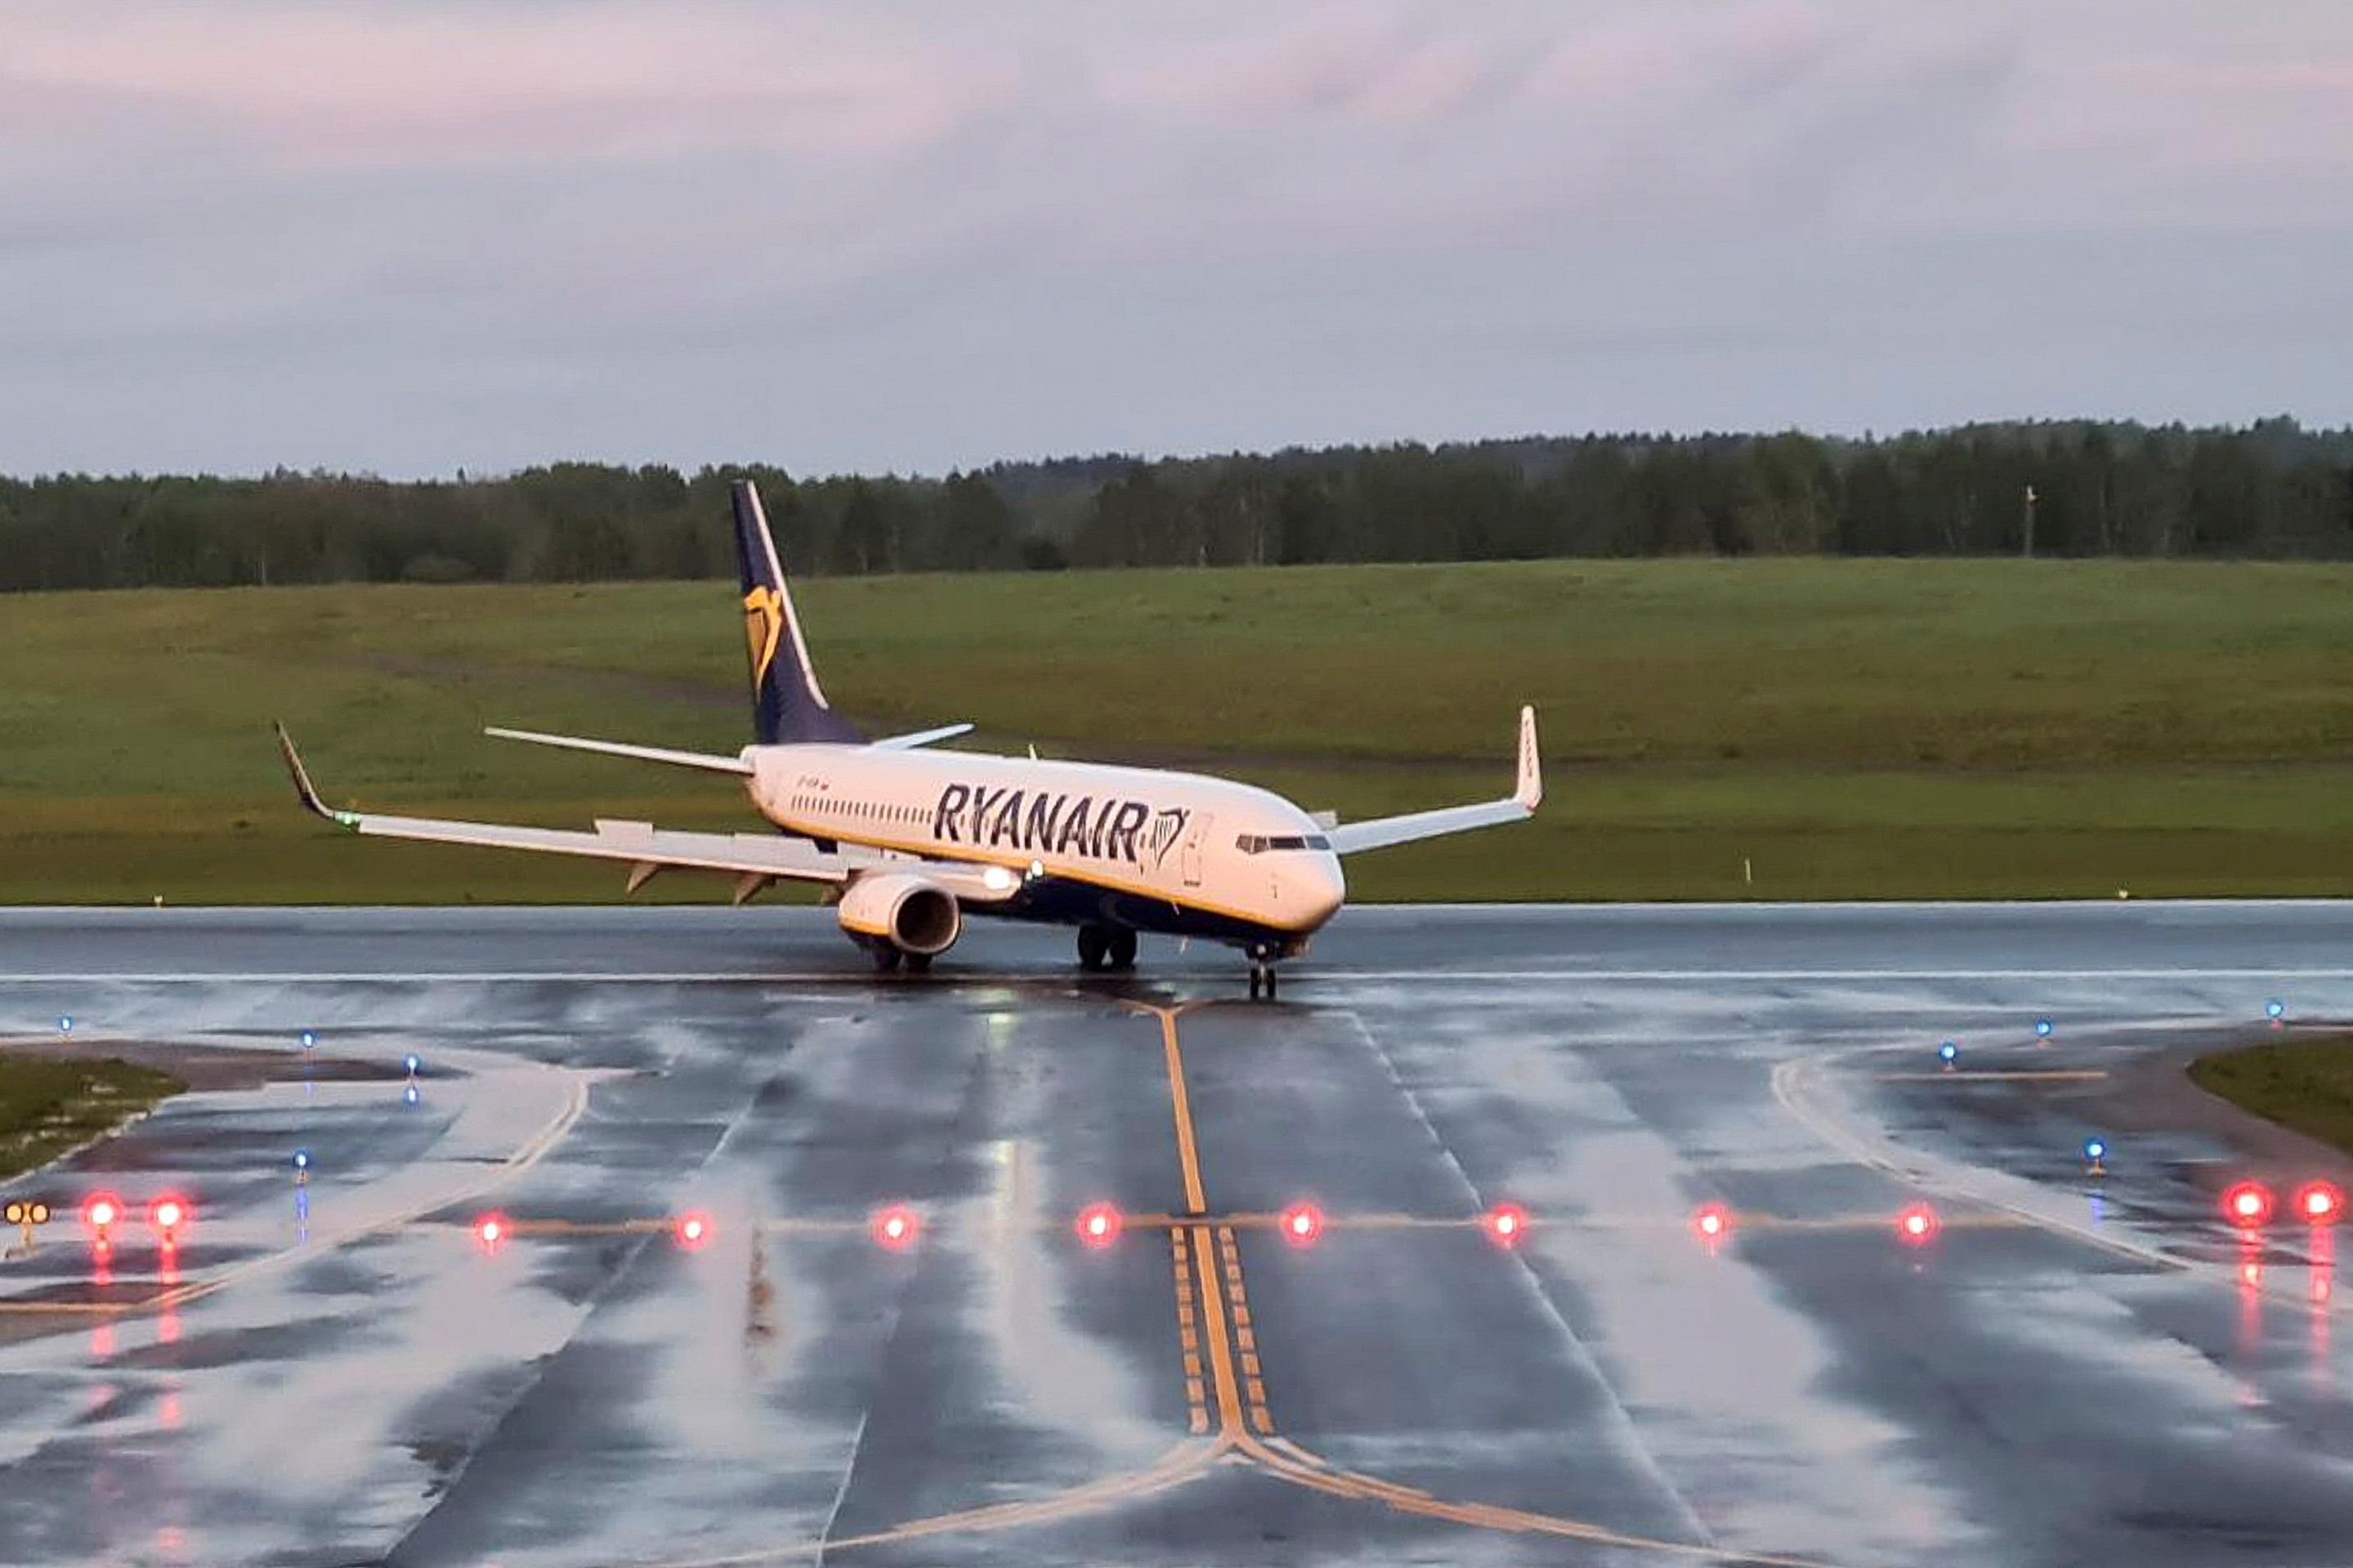 A Ryanair aircraft, which was carrying Belarusian opposition blogger and activist Roman Protasevich and diverted to Belarus, where authorities detained him, lands at Vilnius Airport in Vilnius, Lithuania May 23, 2021. REUTERS/Andrius Sytas